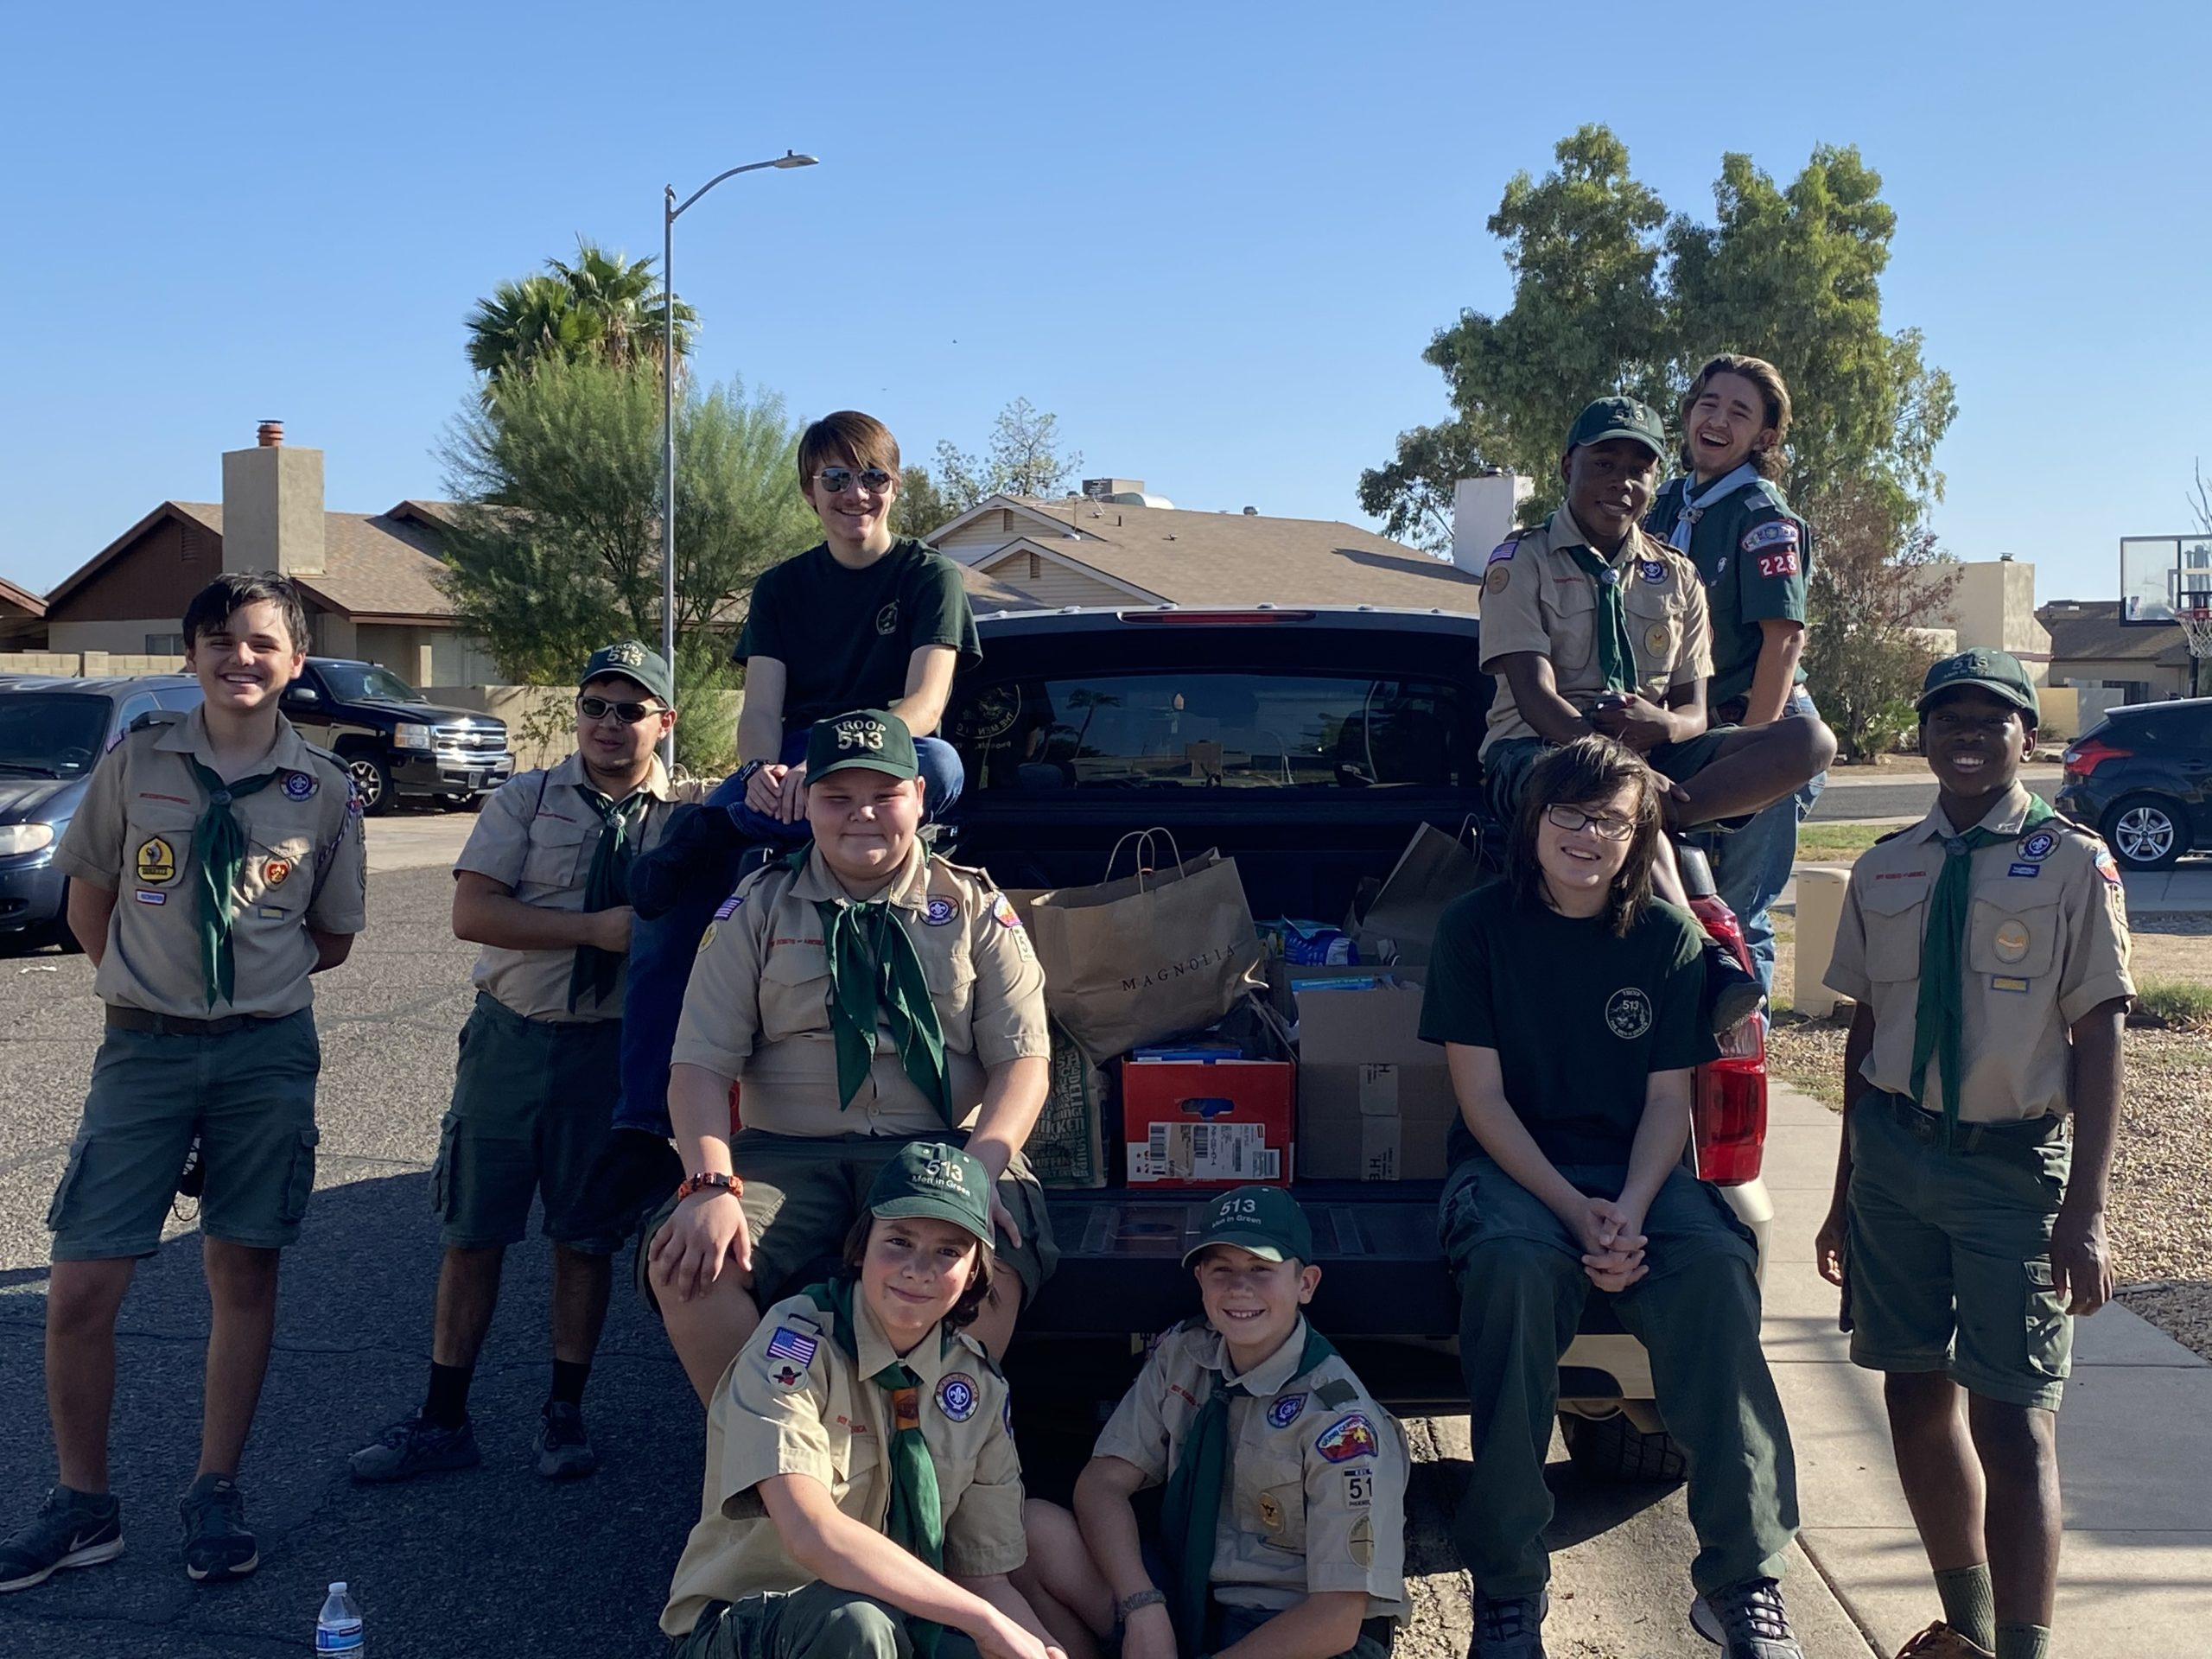 Troop 513 - Scouting For Food - Sonoran Sunset District throughout North Canyon High School Calendar Phoenix